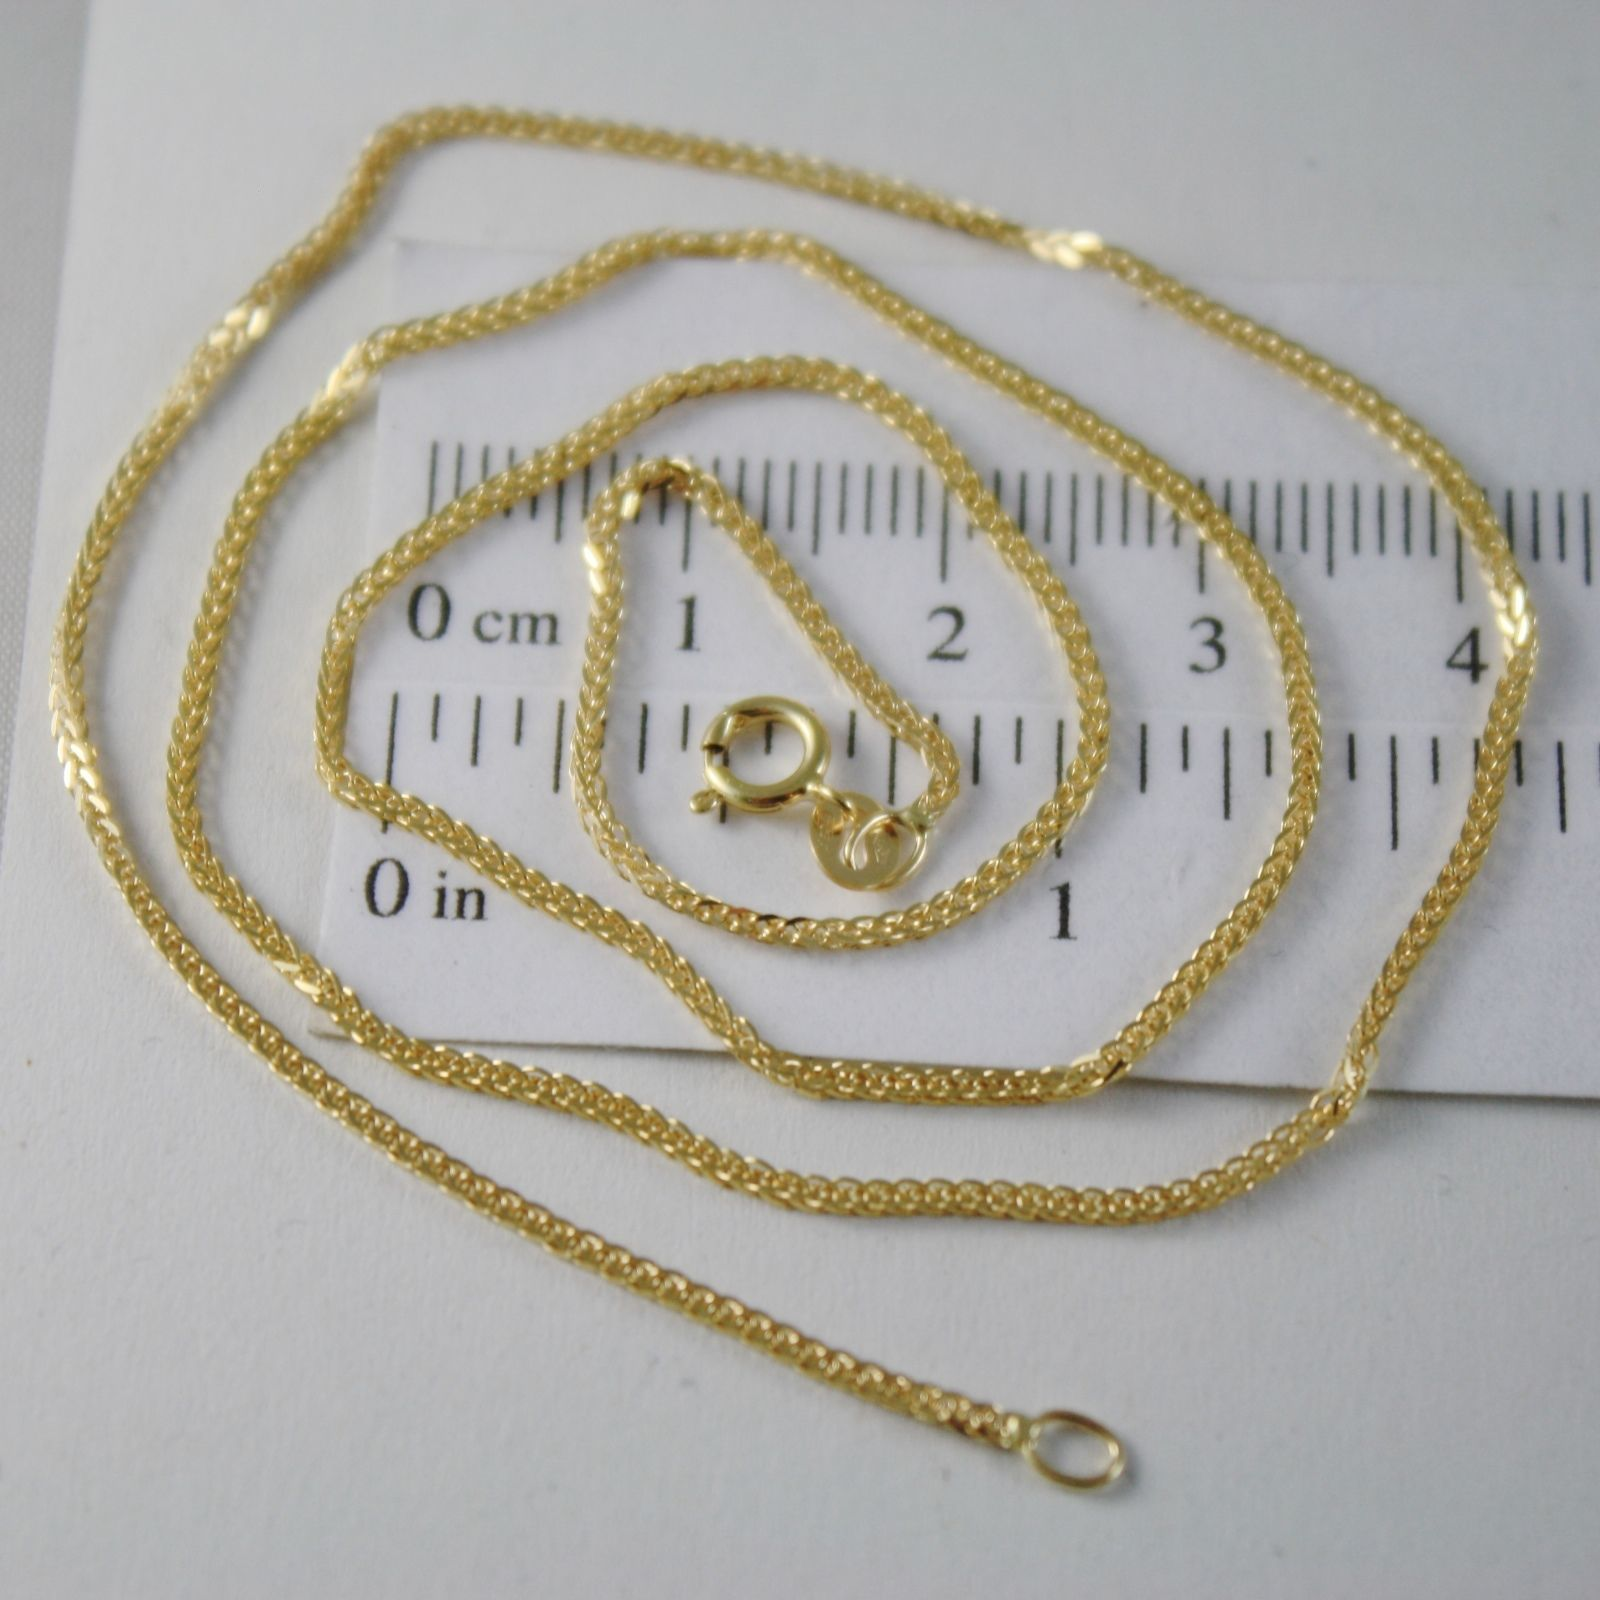 SOLID 18K YELLOW GOLD CHAIN NECKLACE WITH EAR LINK, 17.72 IN. MADE IN ITALY